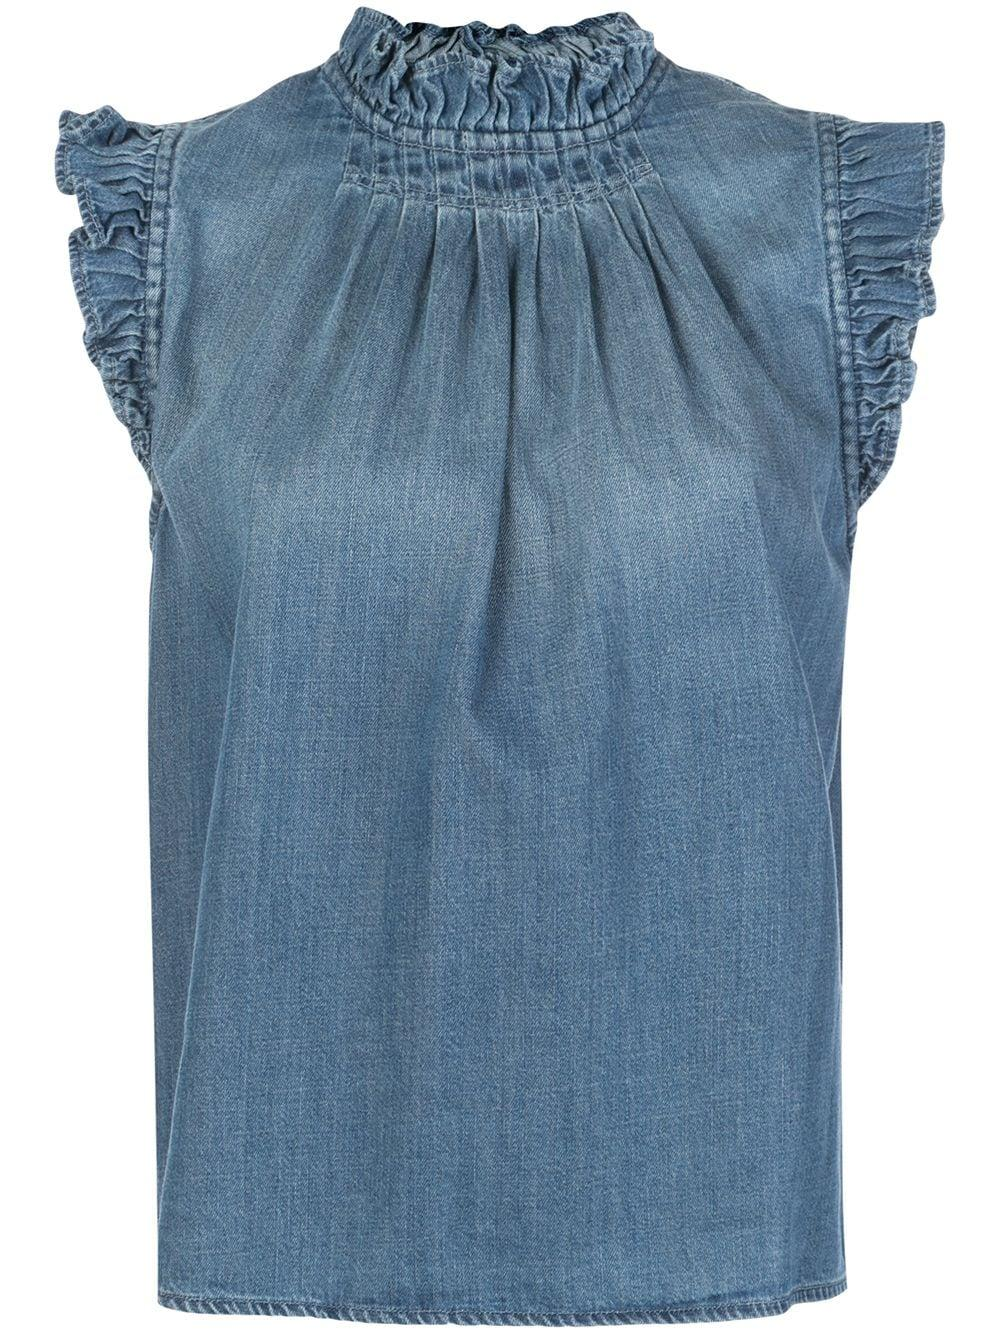 Ruffle Denim Sleeveless Top